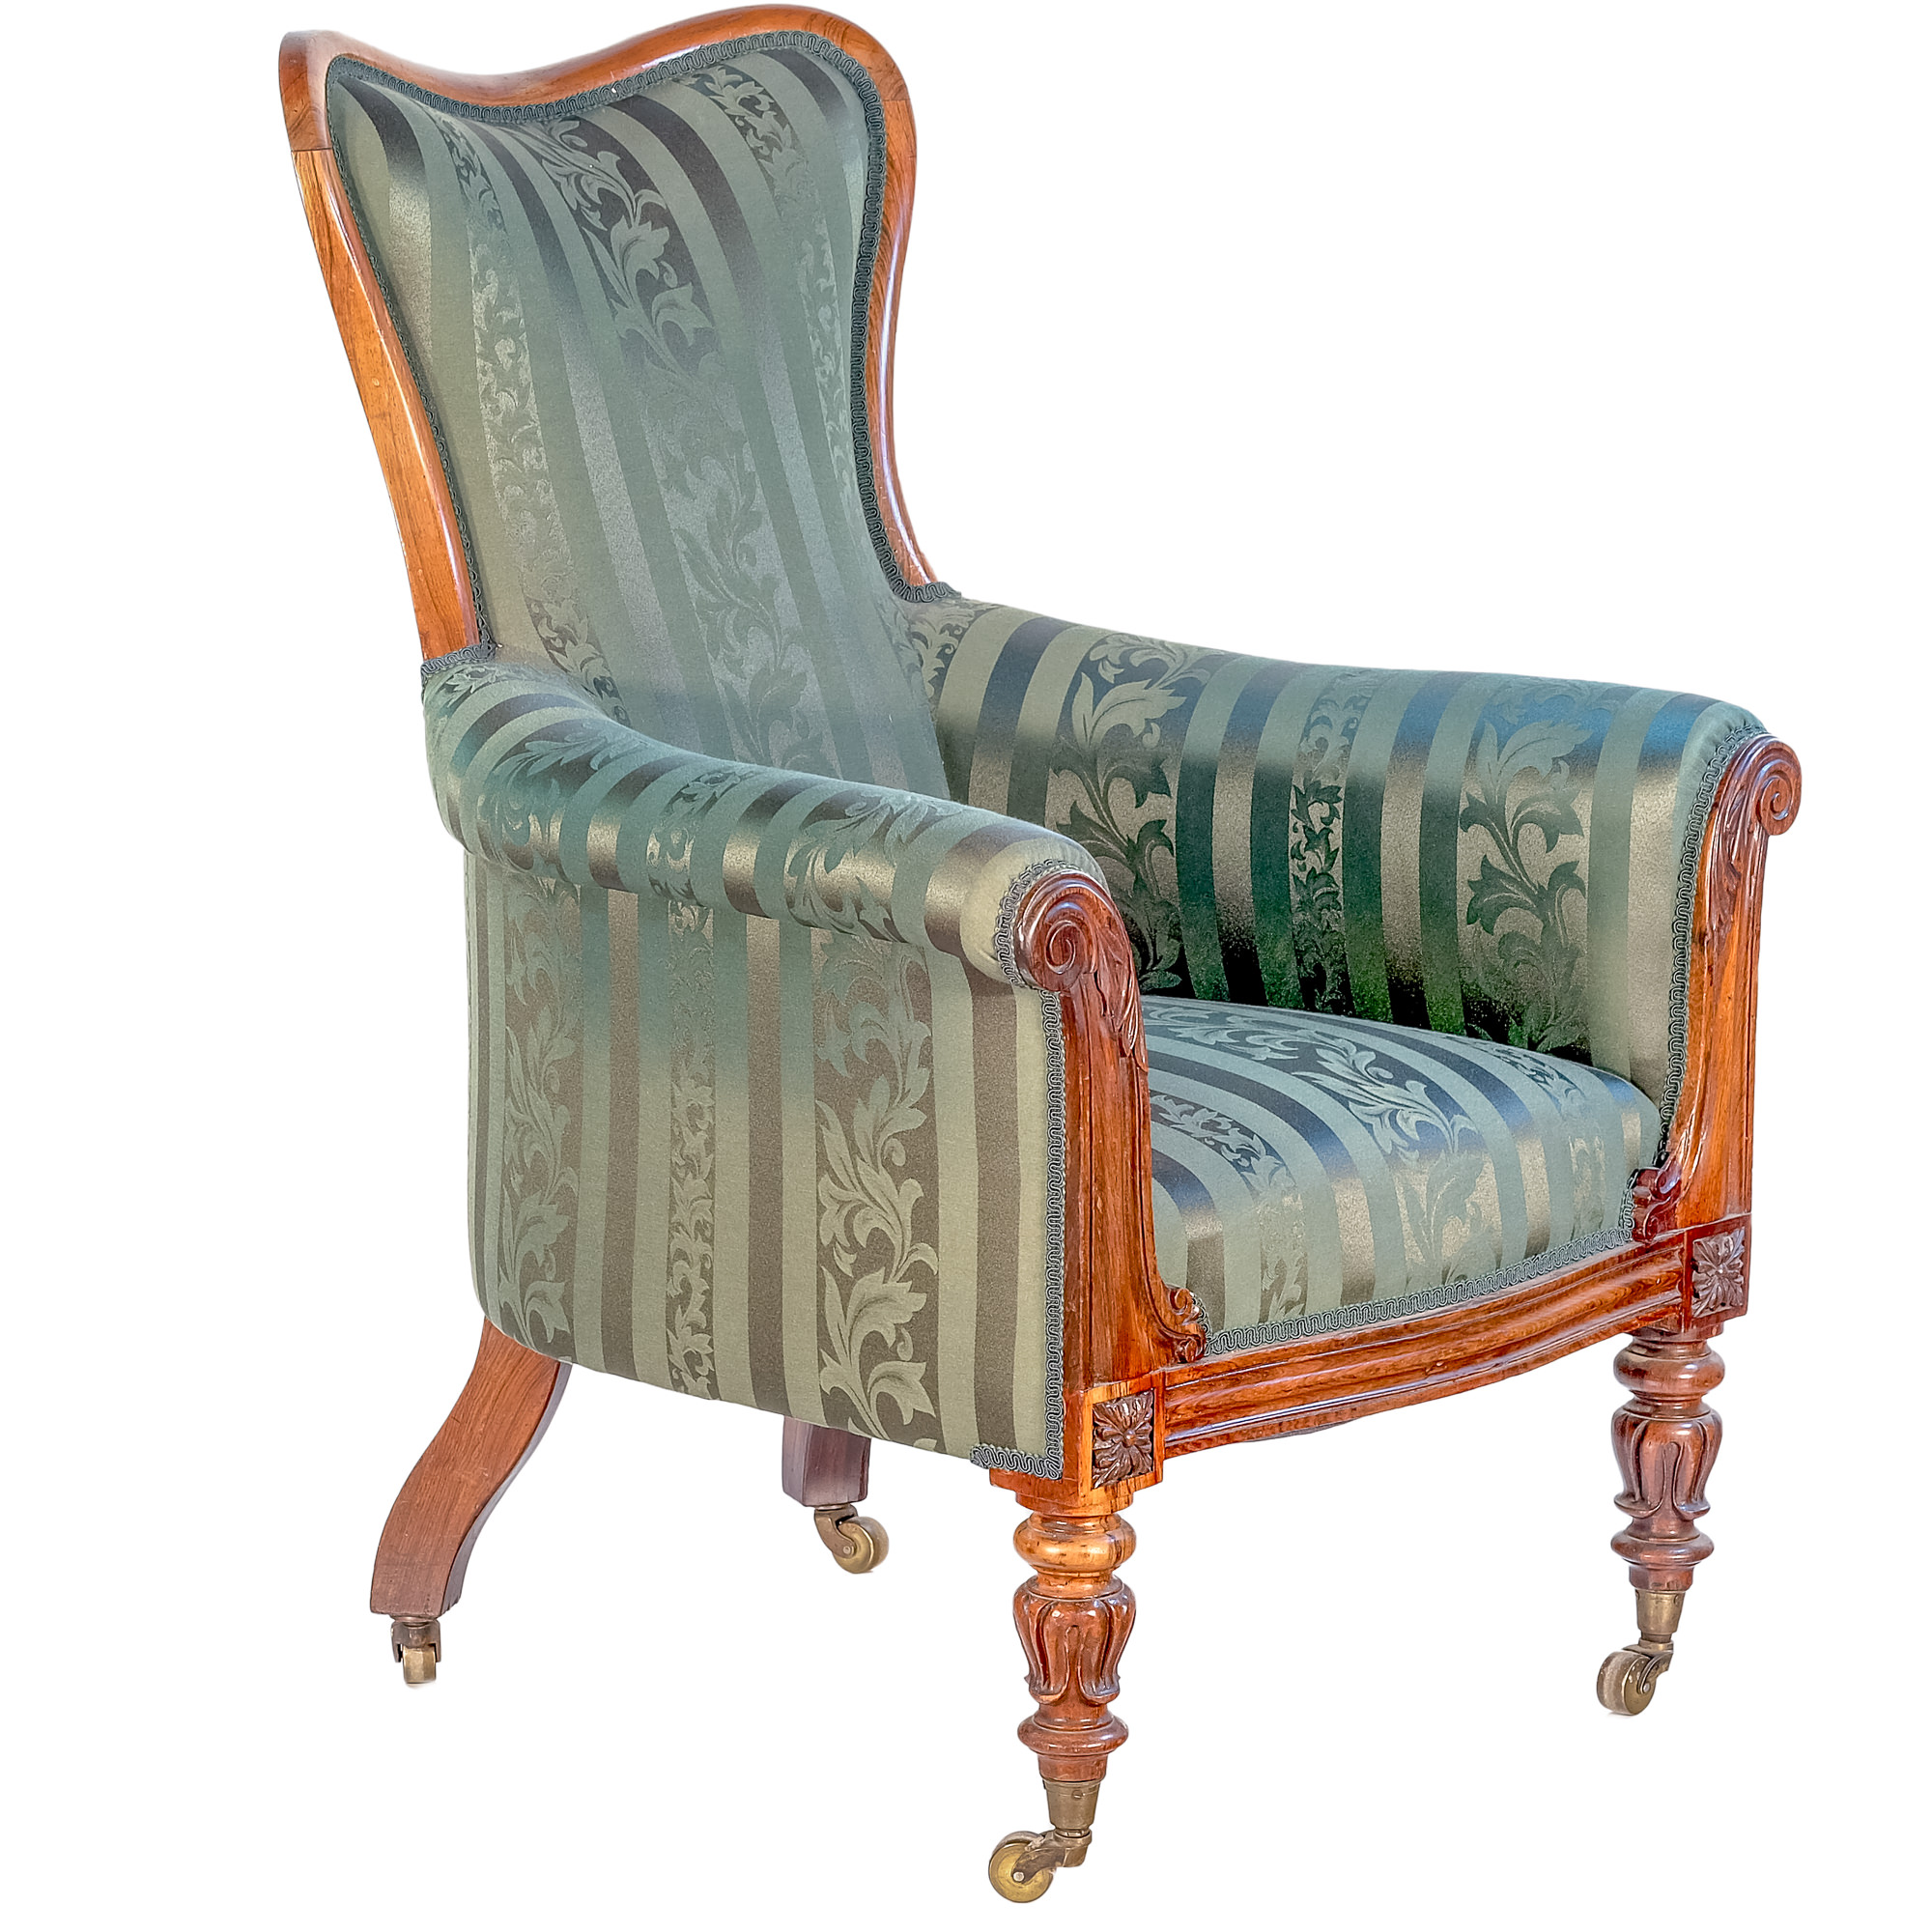 'William IV Brazilian Rosewood Upholstered Drawing Room Chair Circa 1835'